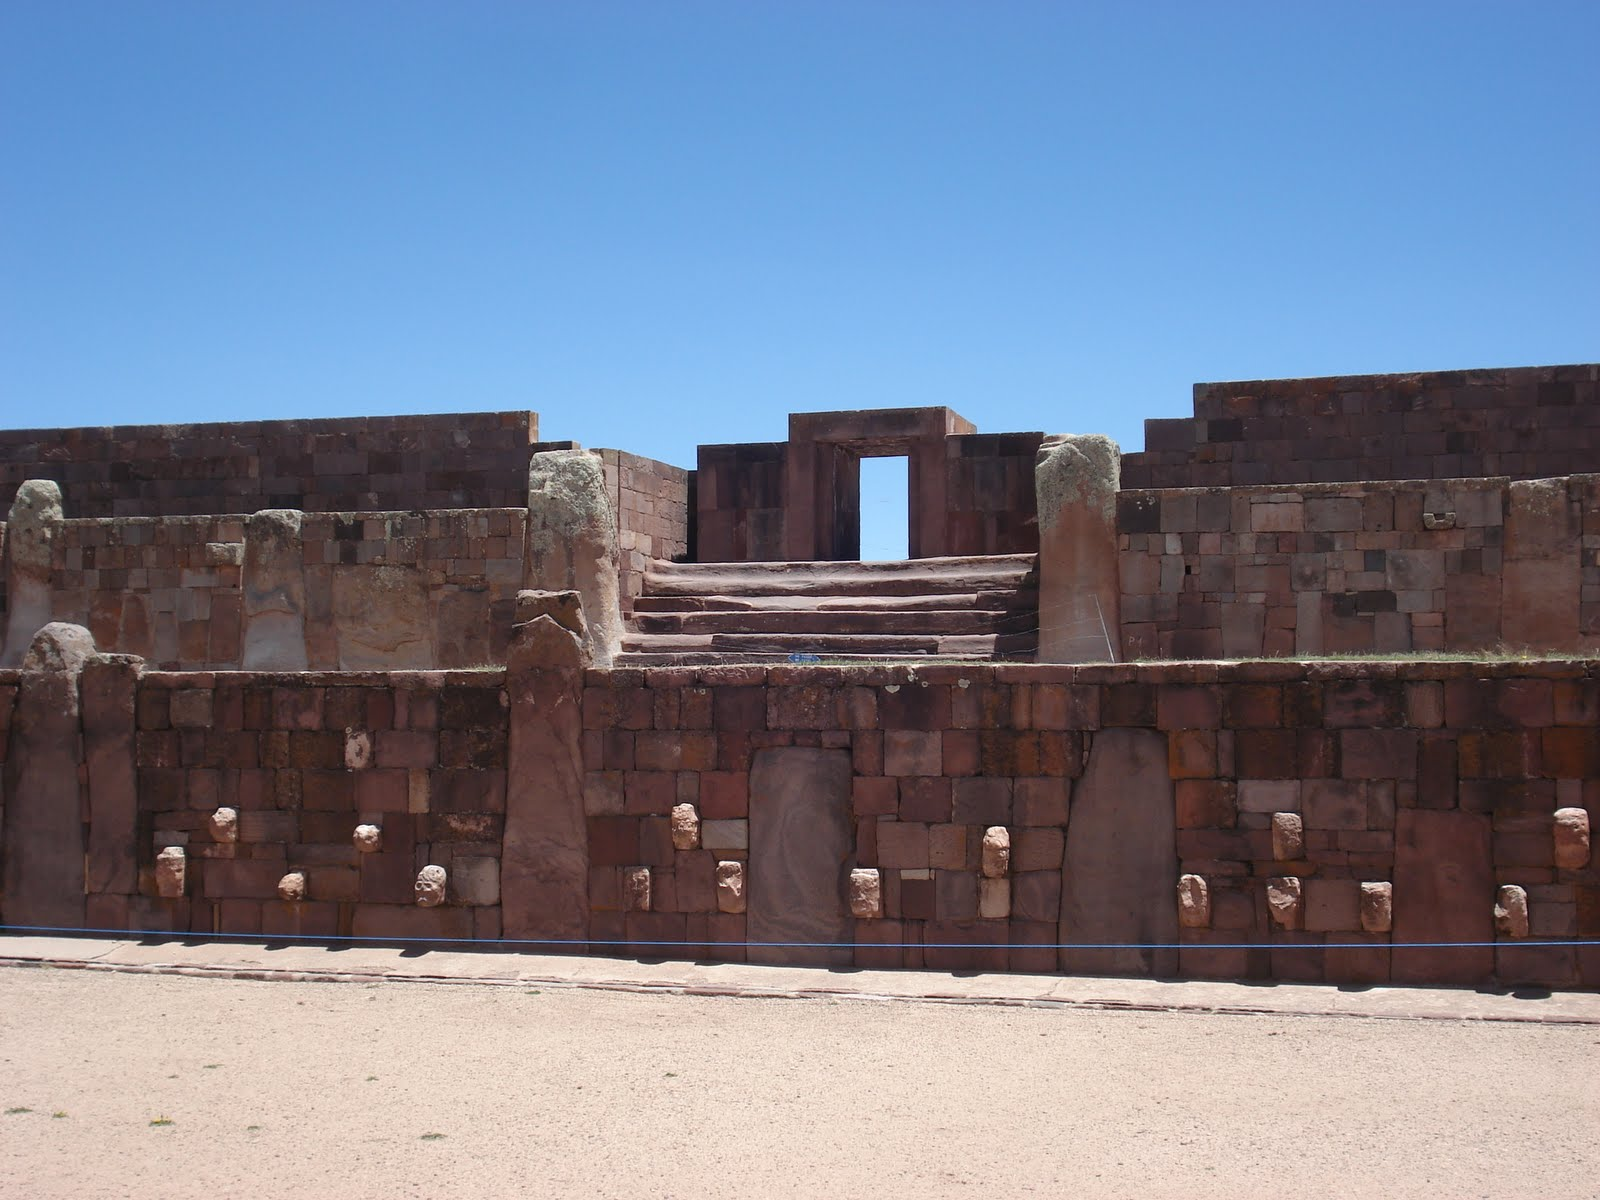 Puma Punku Ancient Advanced Civilization